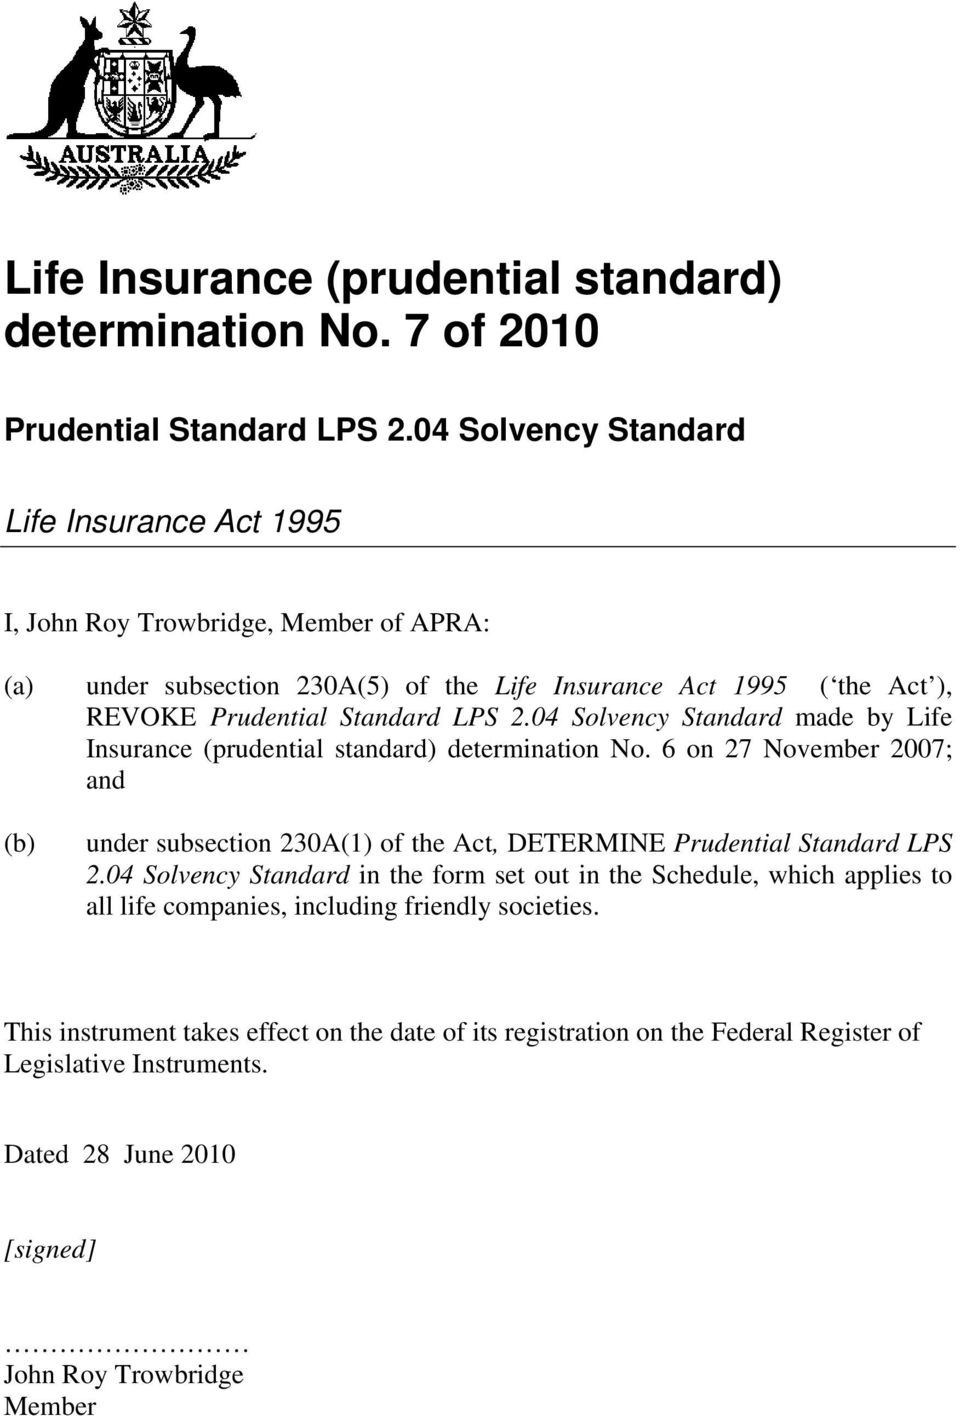 LPS 2.04 Solvency Standard made by Life Insurance (prudential standard) determination No. 6 on 27 November 2007; and under subsection 230A(1) of the Act, DETERMINE Prudential Standard LPS 2.